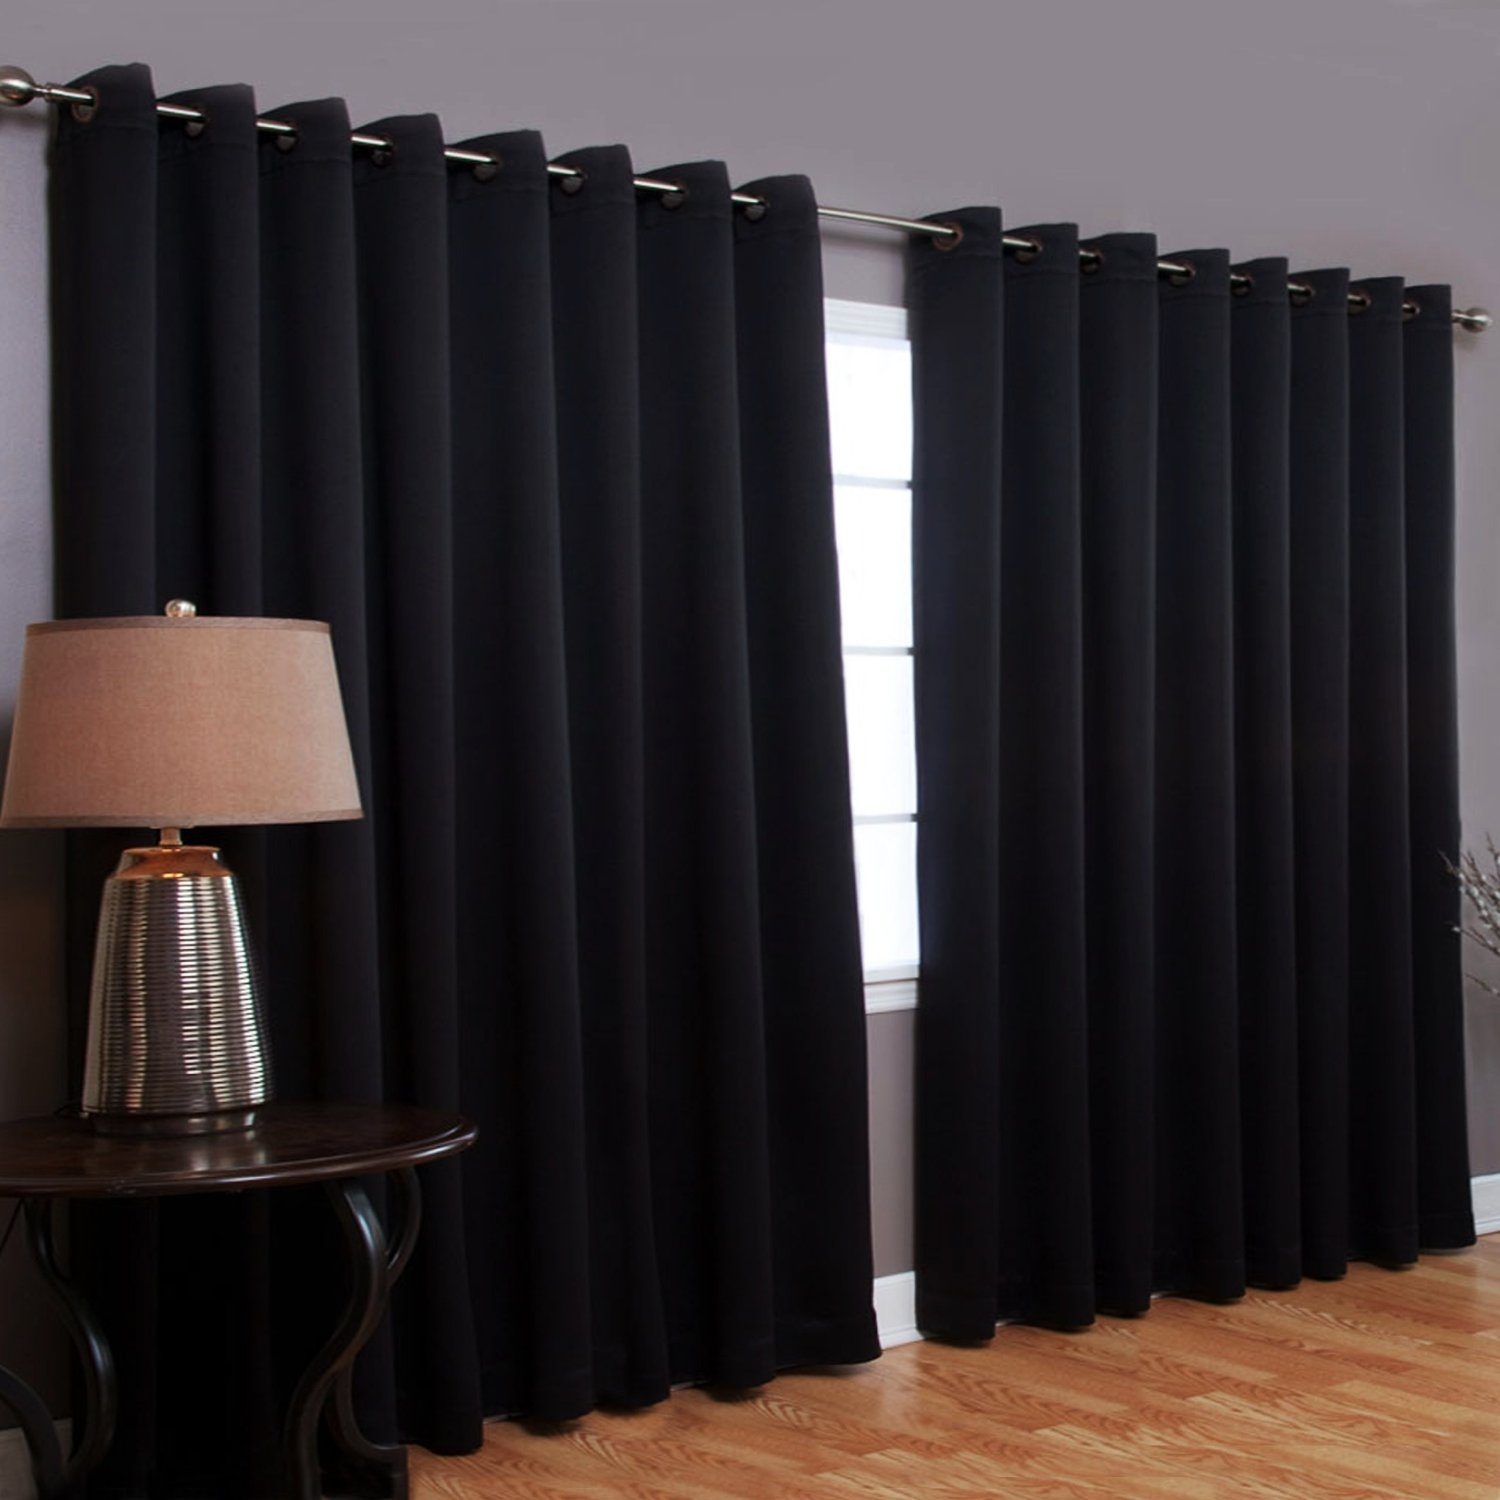 Thick Curtains For Bedroom Curtain Idea Also Short Drop Blackout Pertaining To Thick Bedroom Curtains (View 5 of 15)